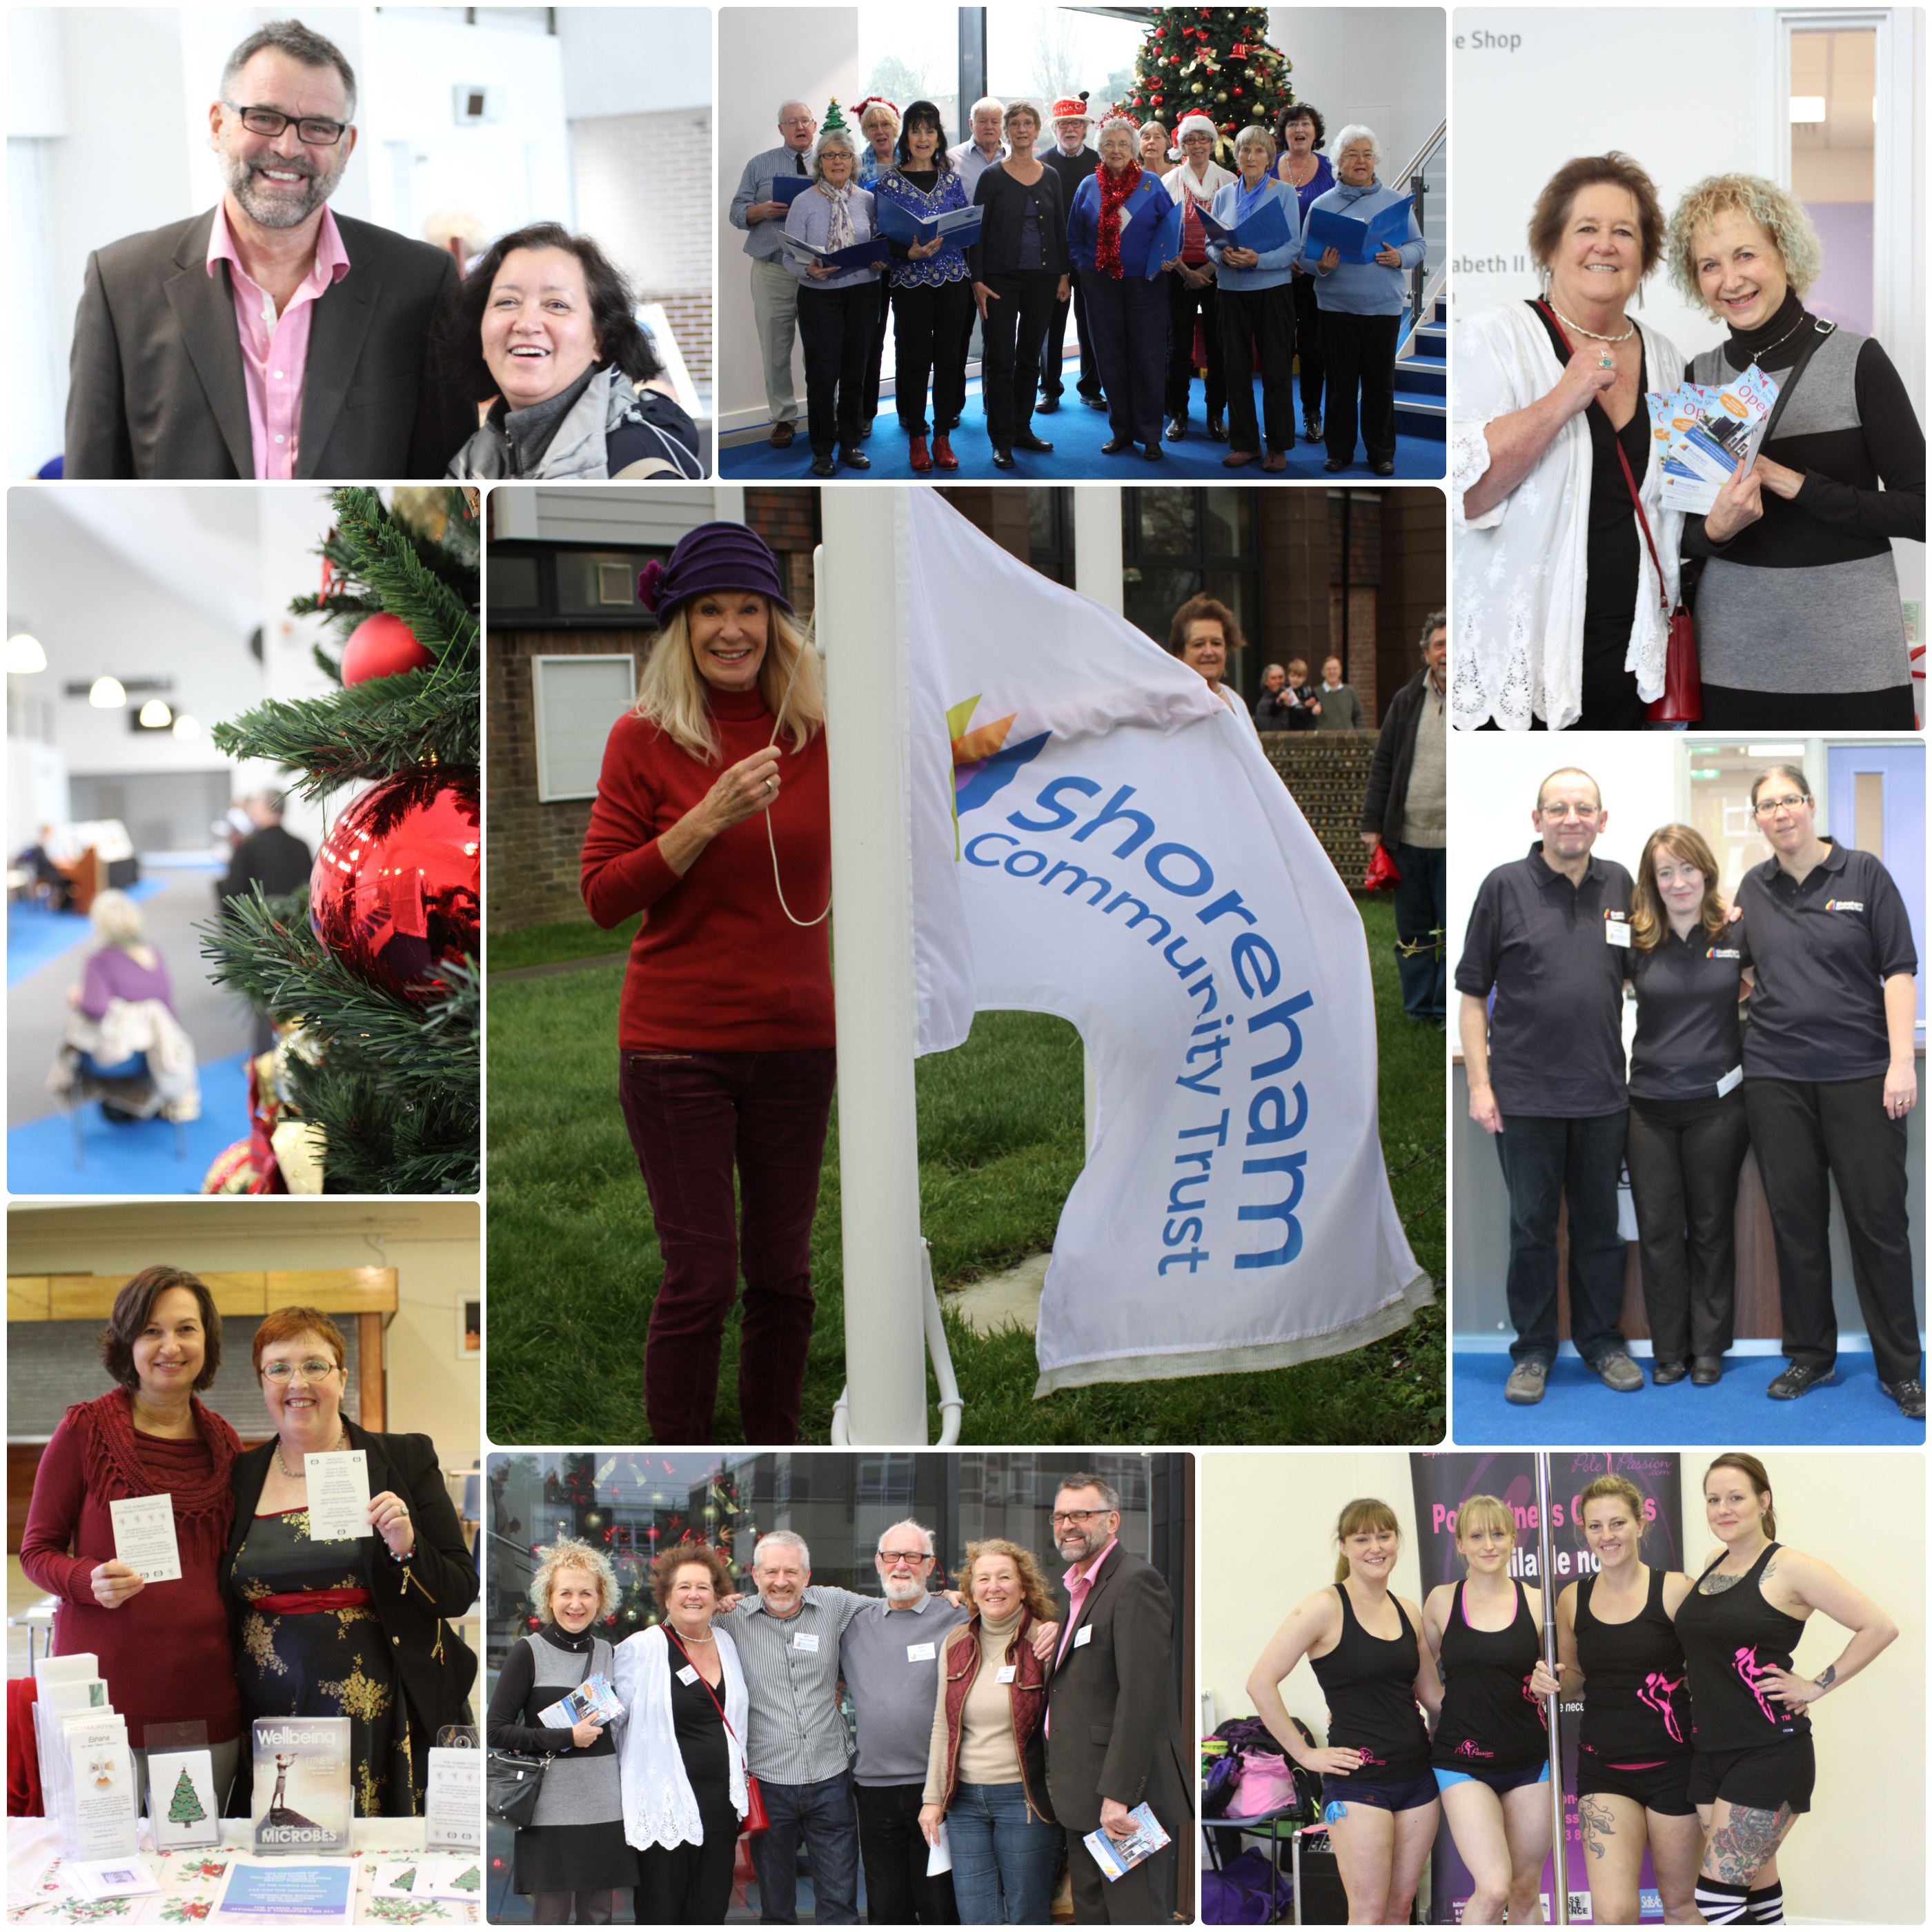 A selection of images from the launch of the Shoreham Community Centre.